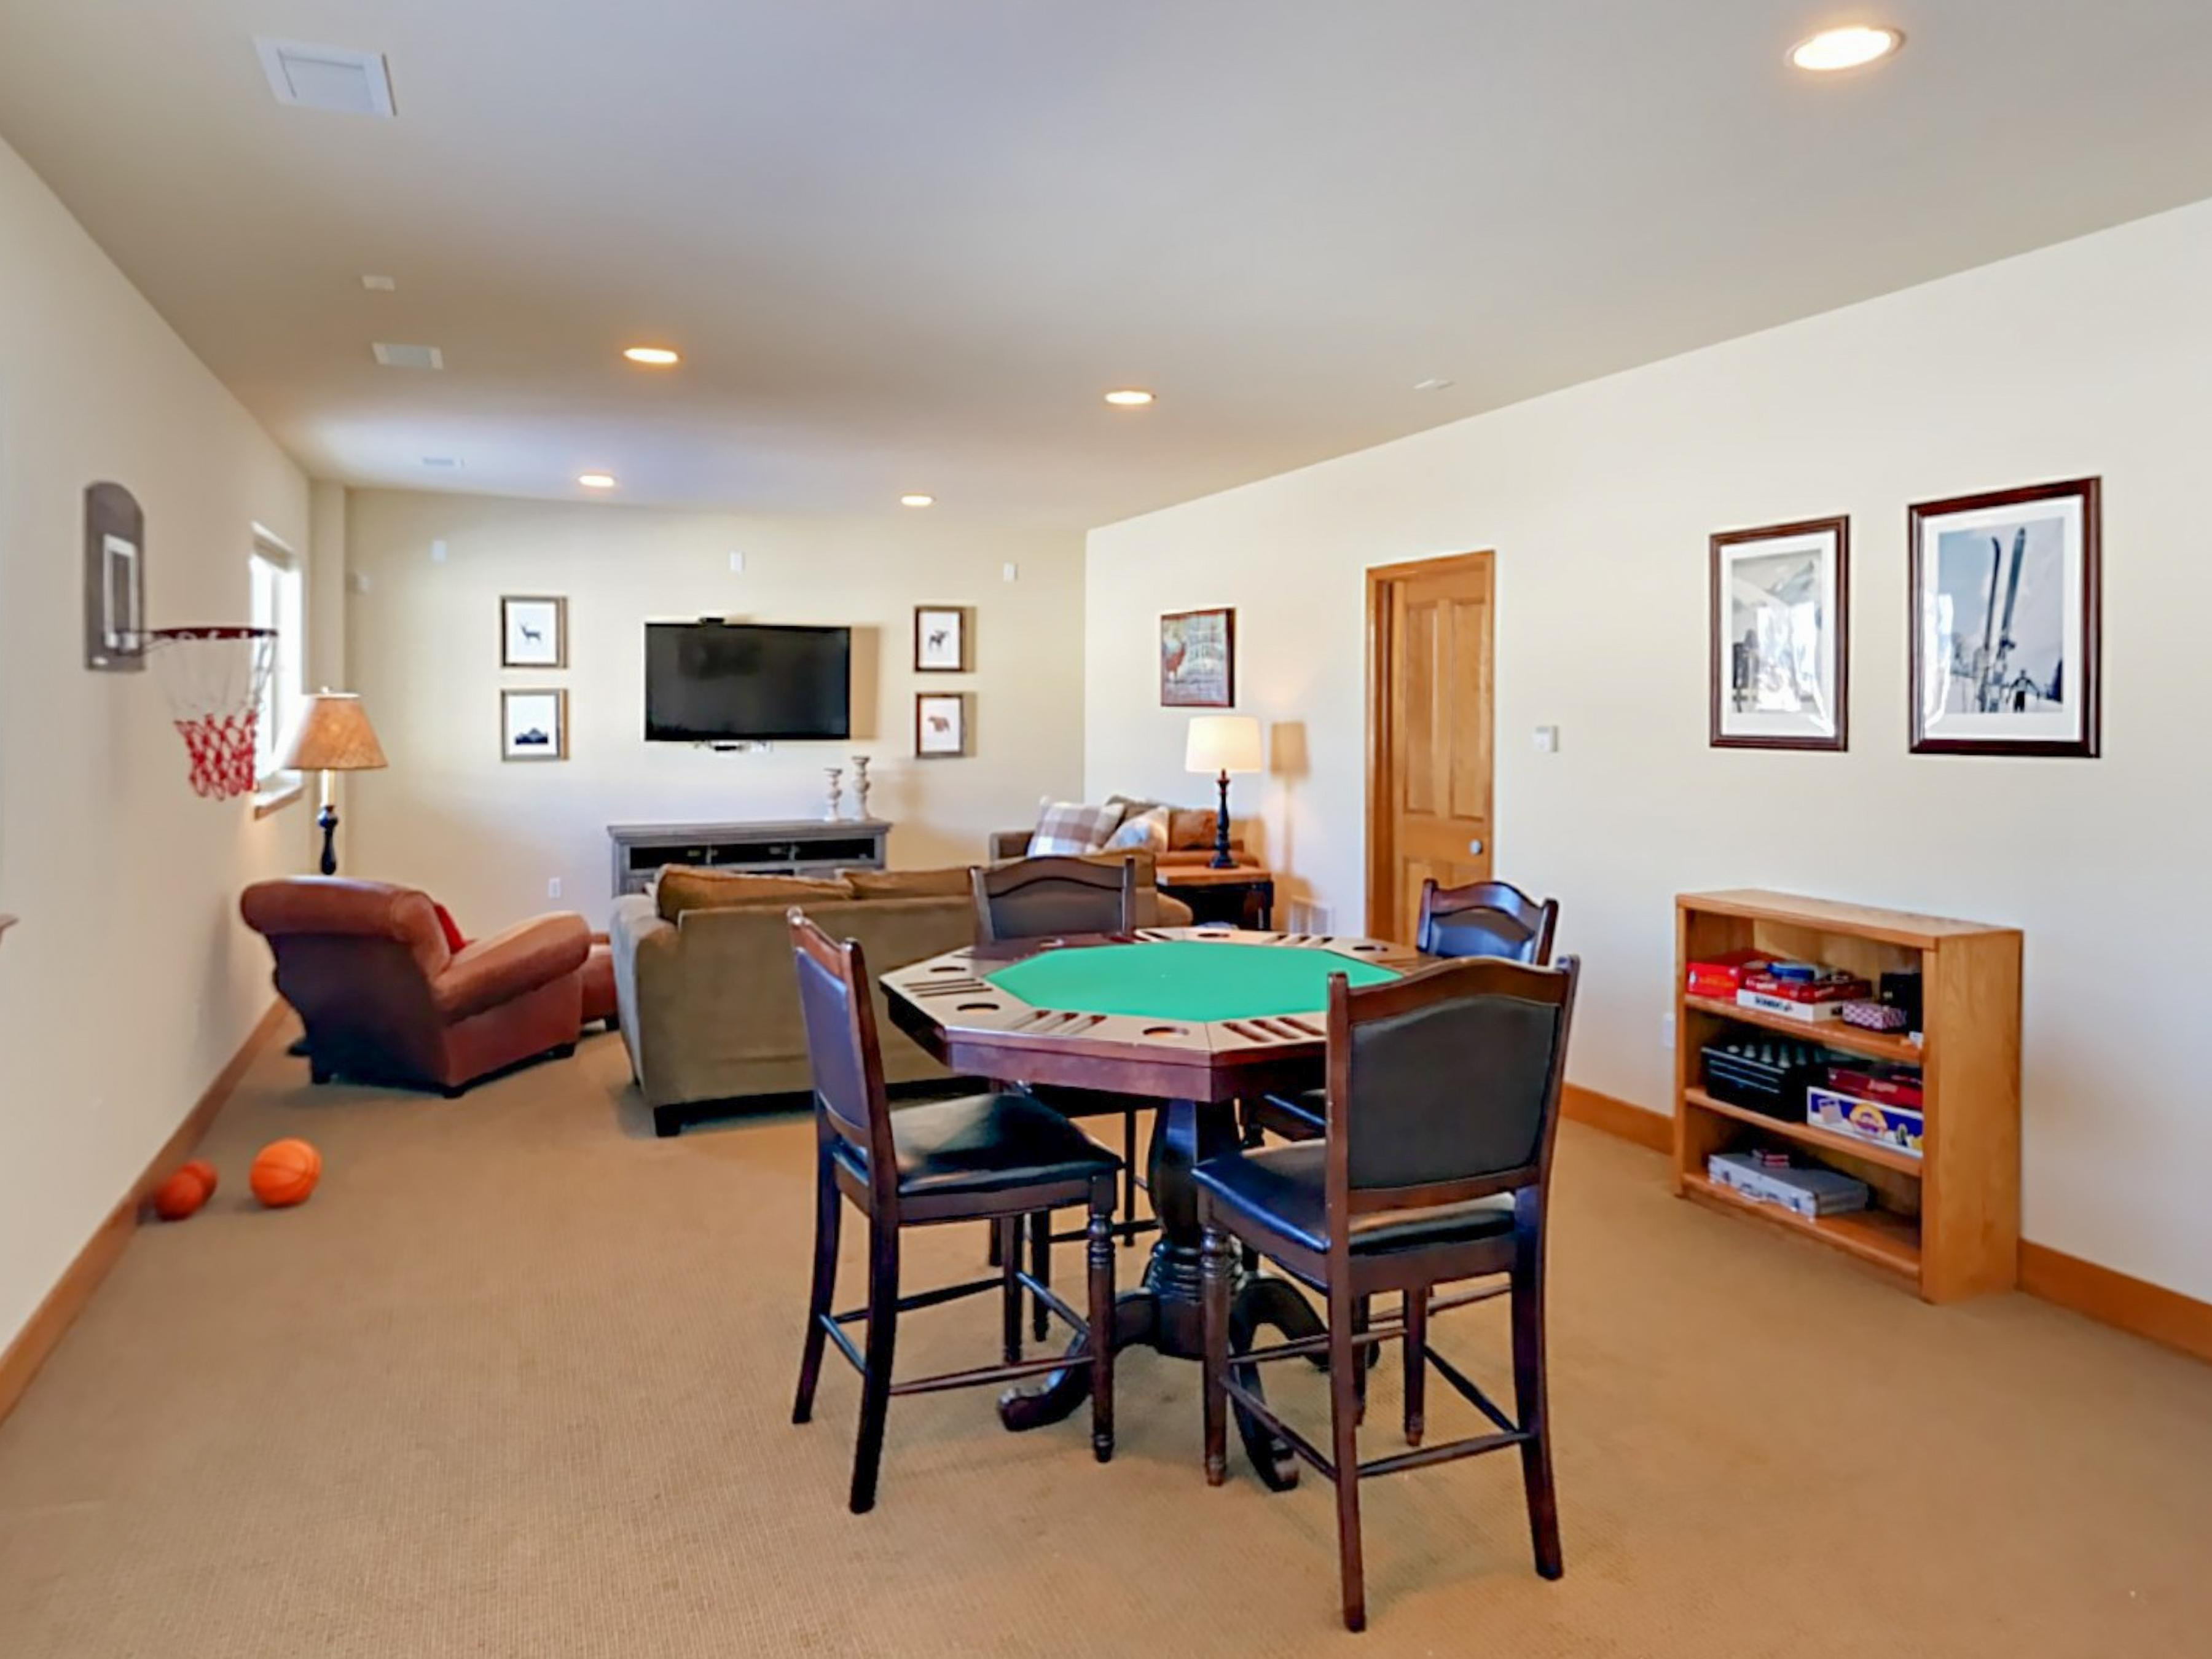 Show your skills at the poker table in the 2nd living room.